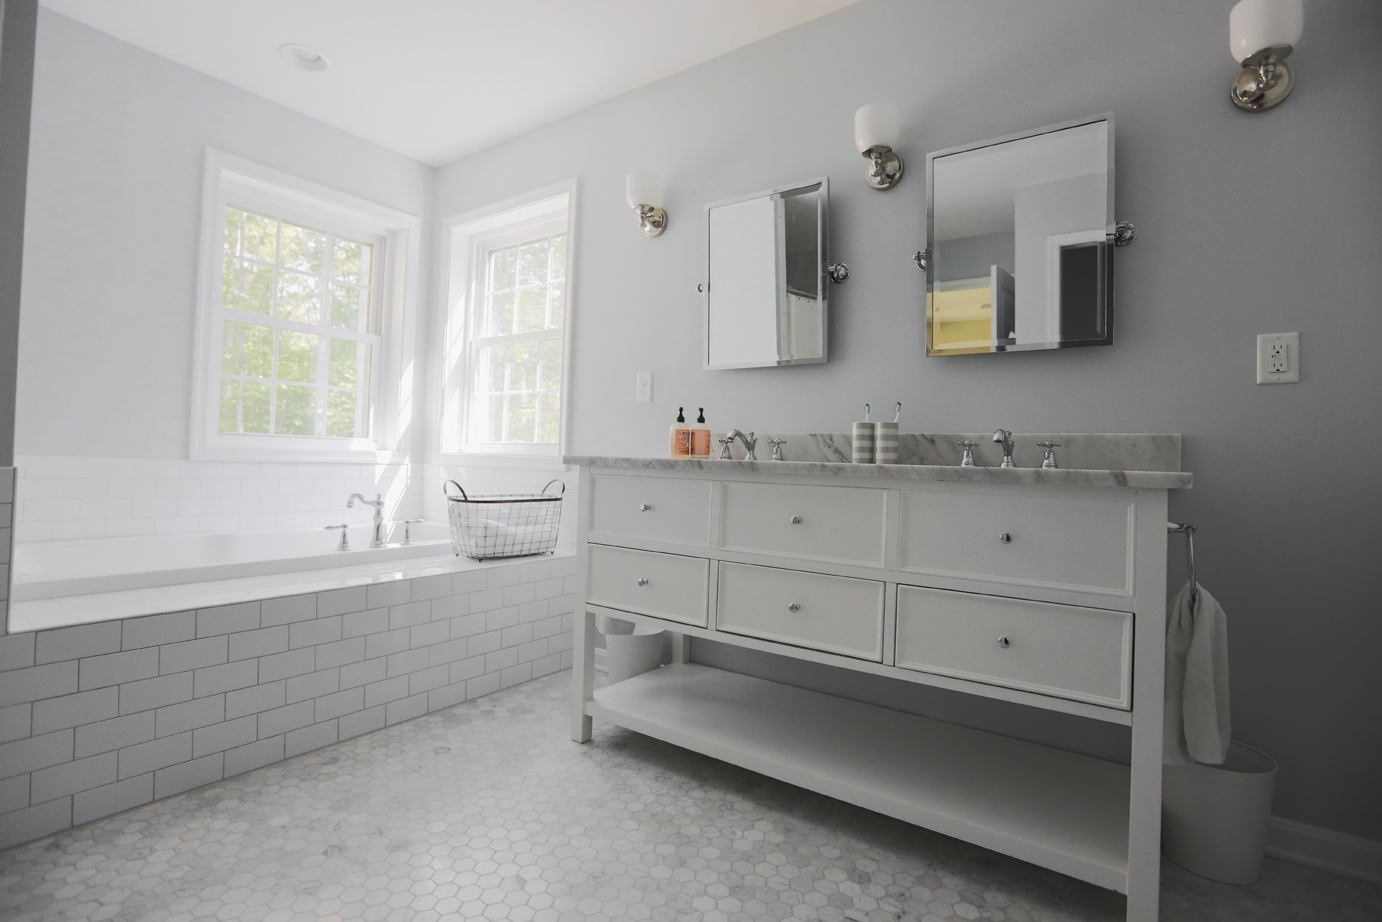 Lunch break g tour of the little house the potty rooms all of the bathrooms have traditional white subway tile with a light gray grout on the walls downstairs the hardwood floors that are on the entire floor go dailygadgetfo Images